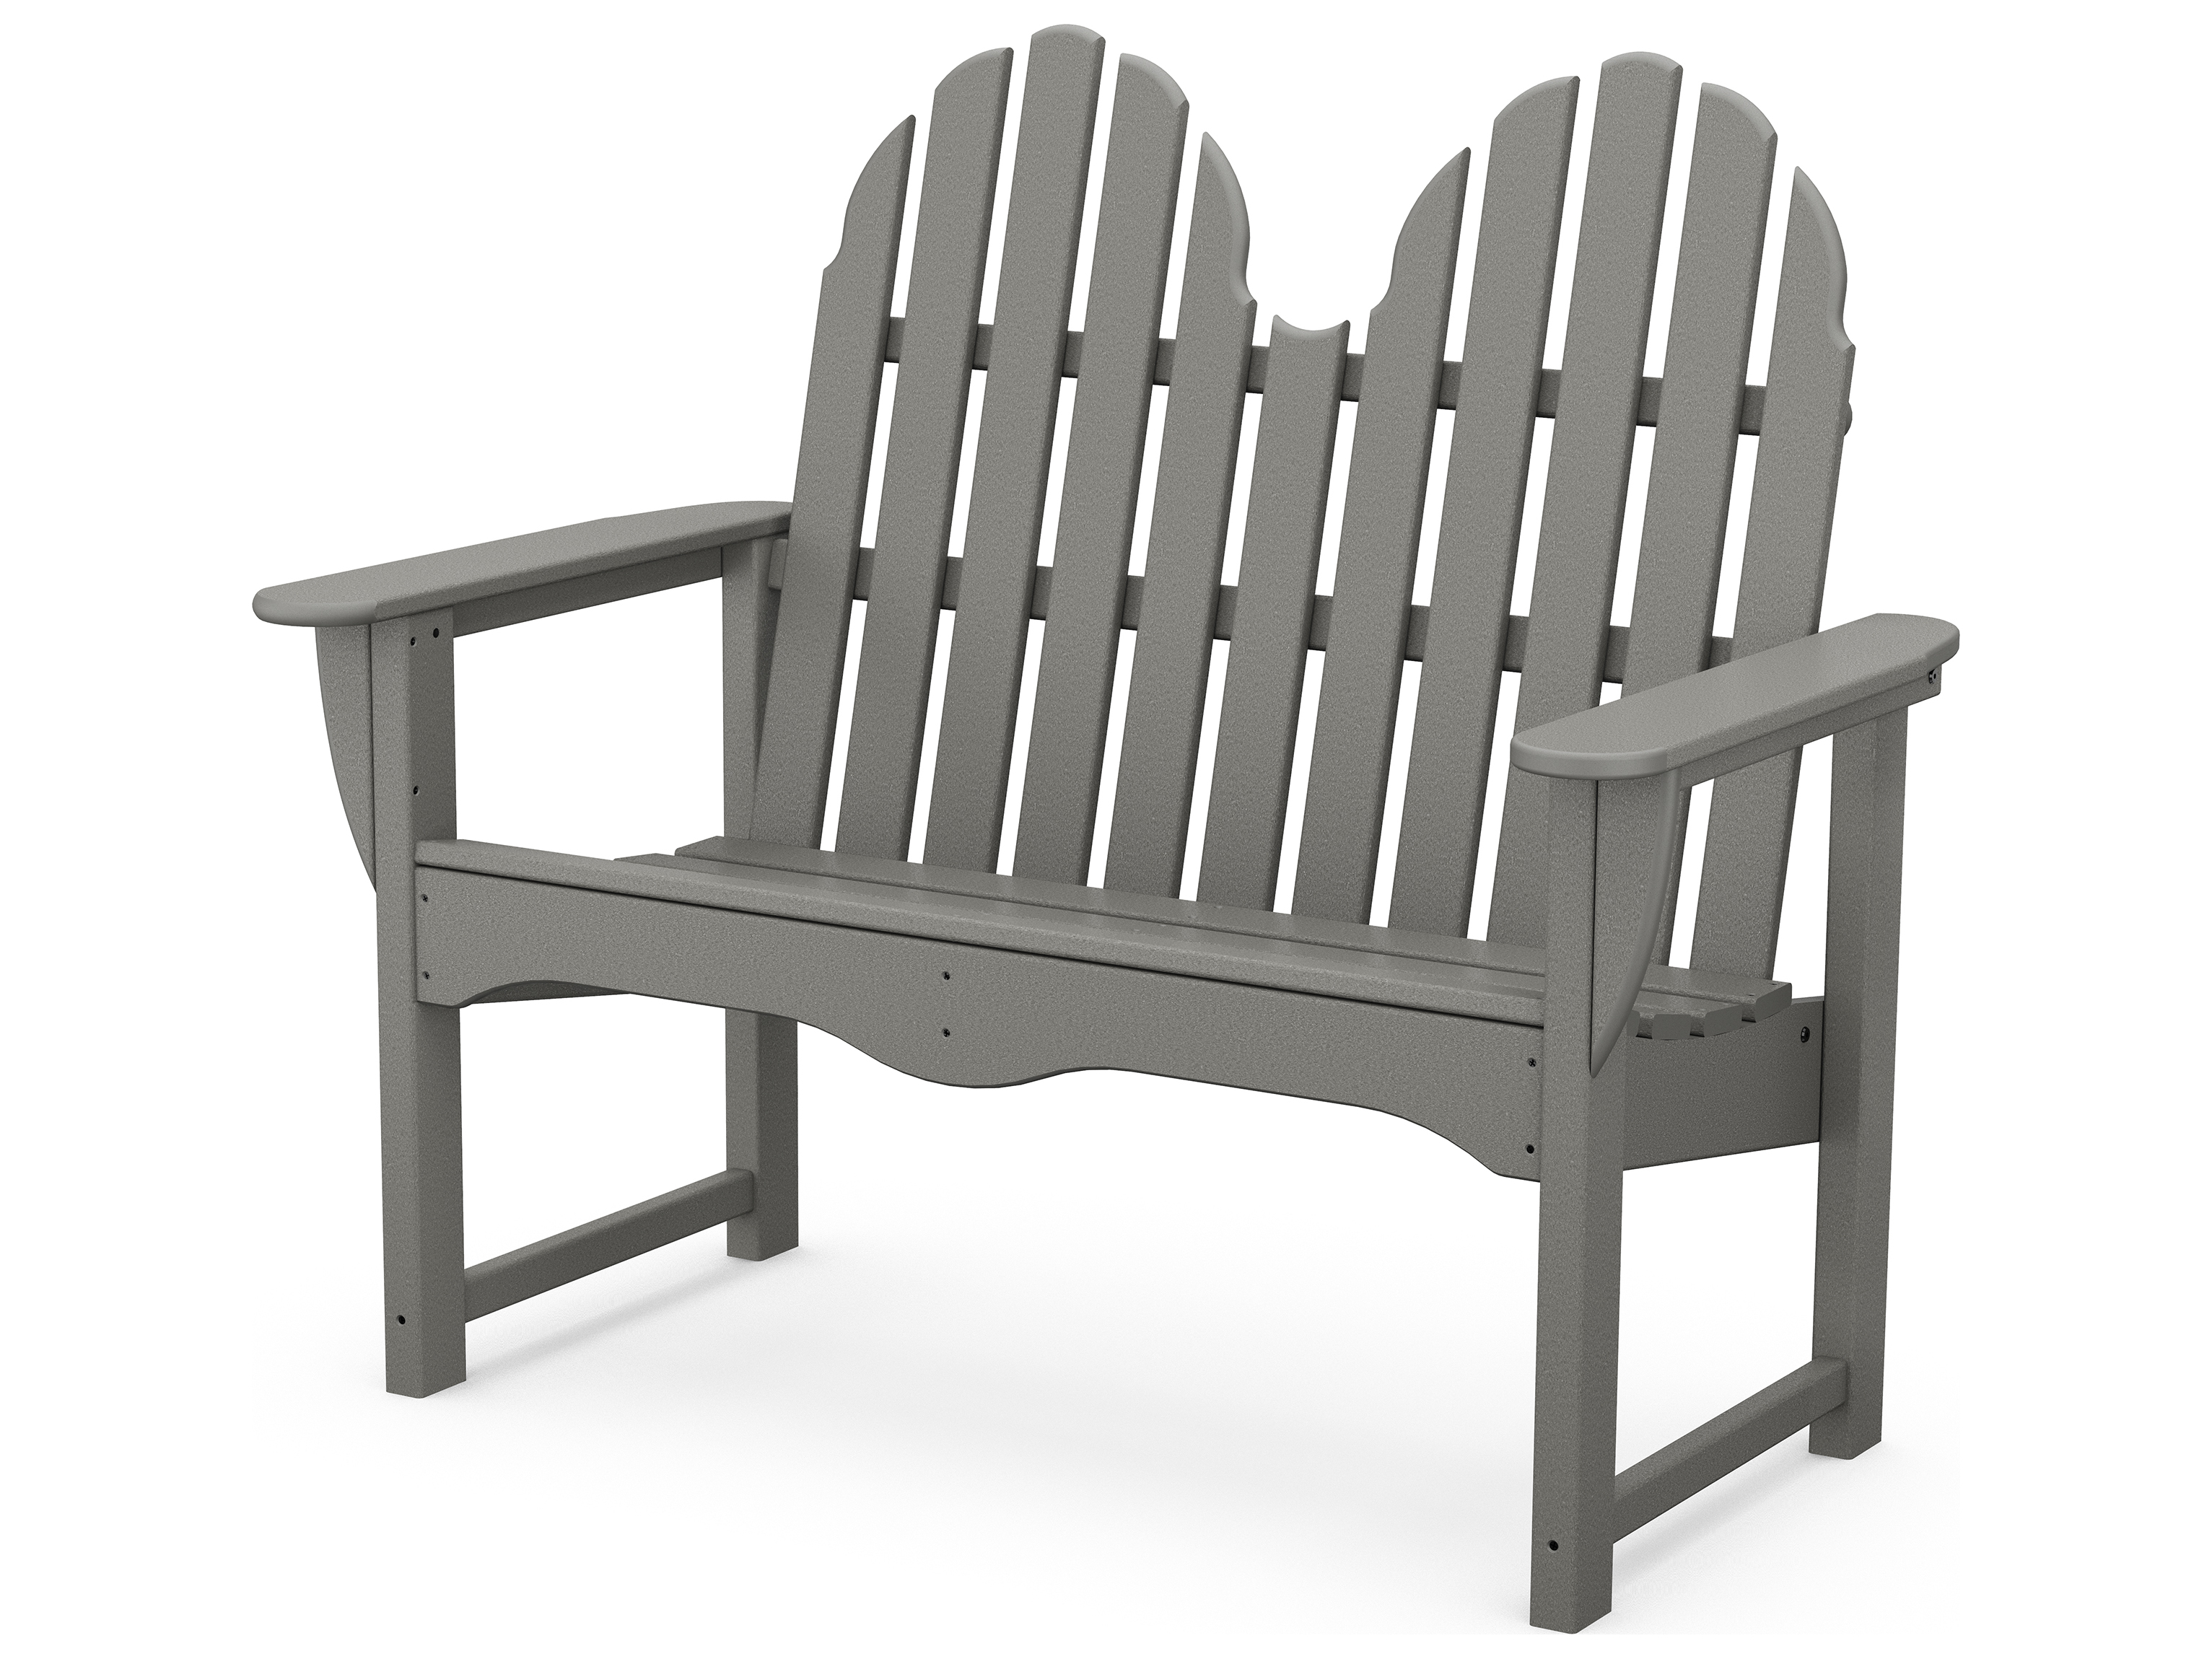 Polywood classic adirondack recycled plastic 48 bench adbn 1 Polywood bench